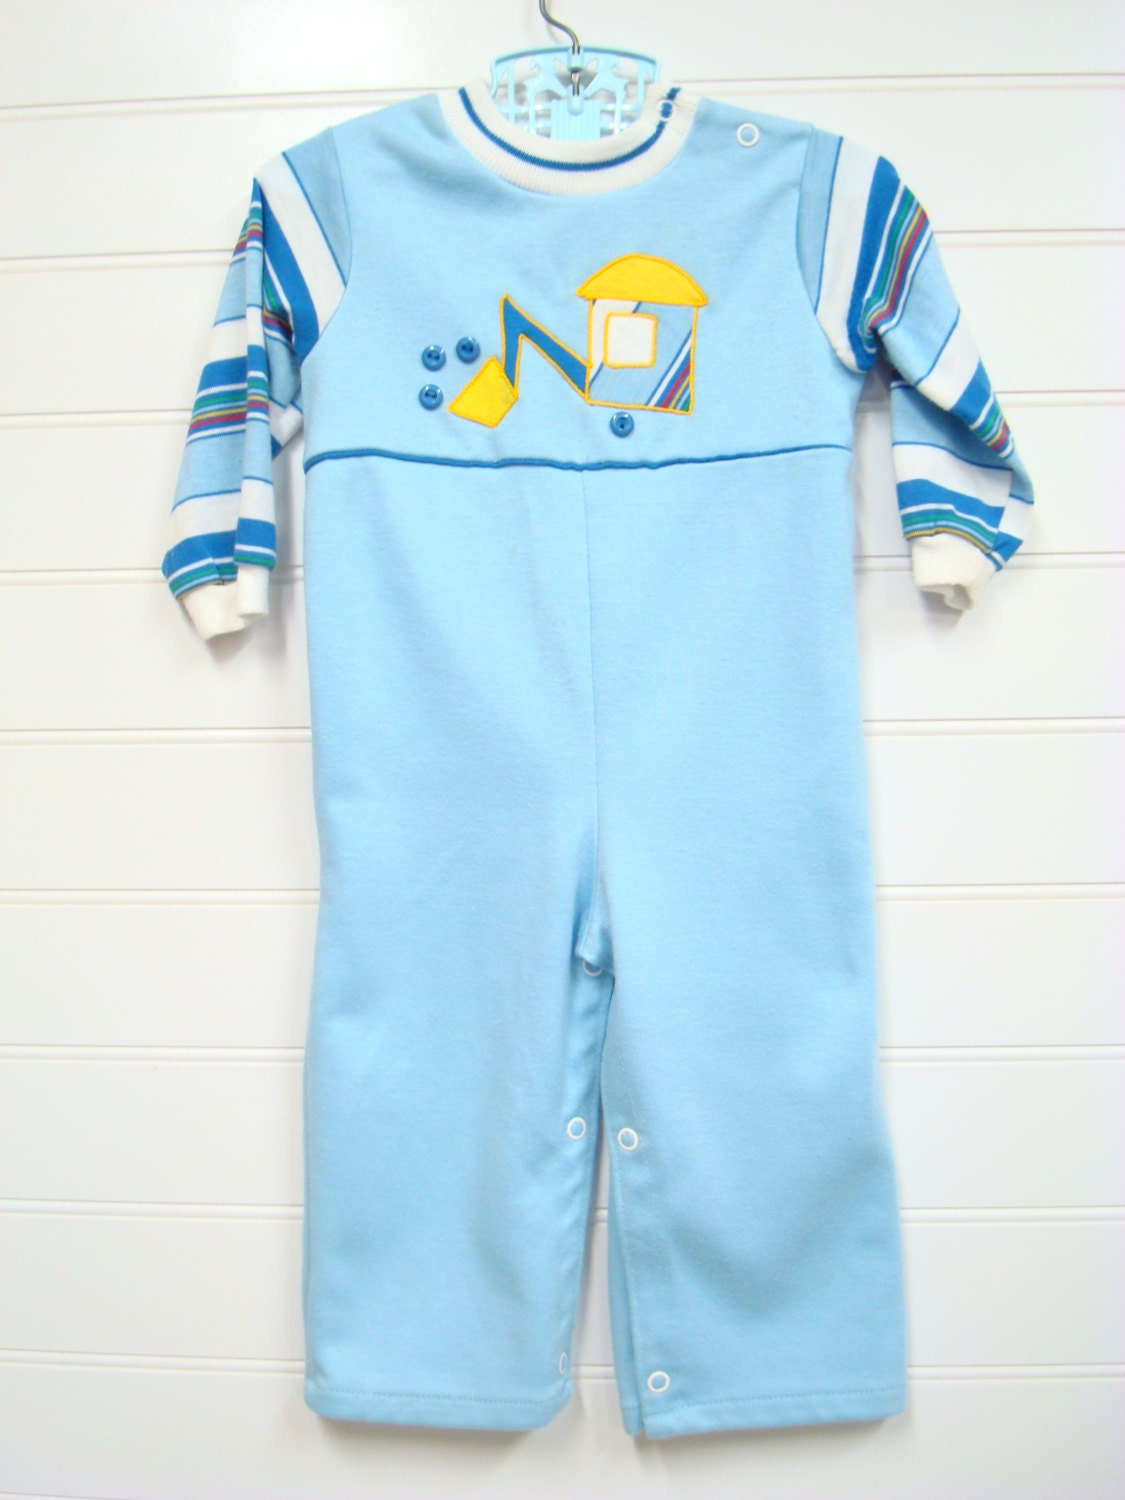 vintage baby clothes baby boy romper in shades of blue